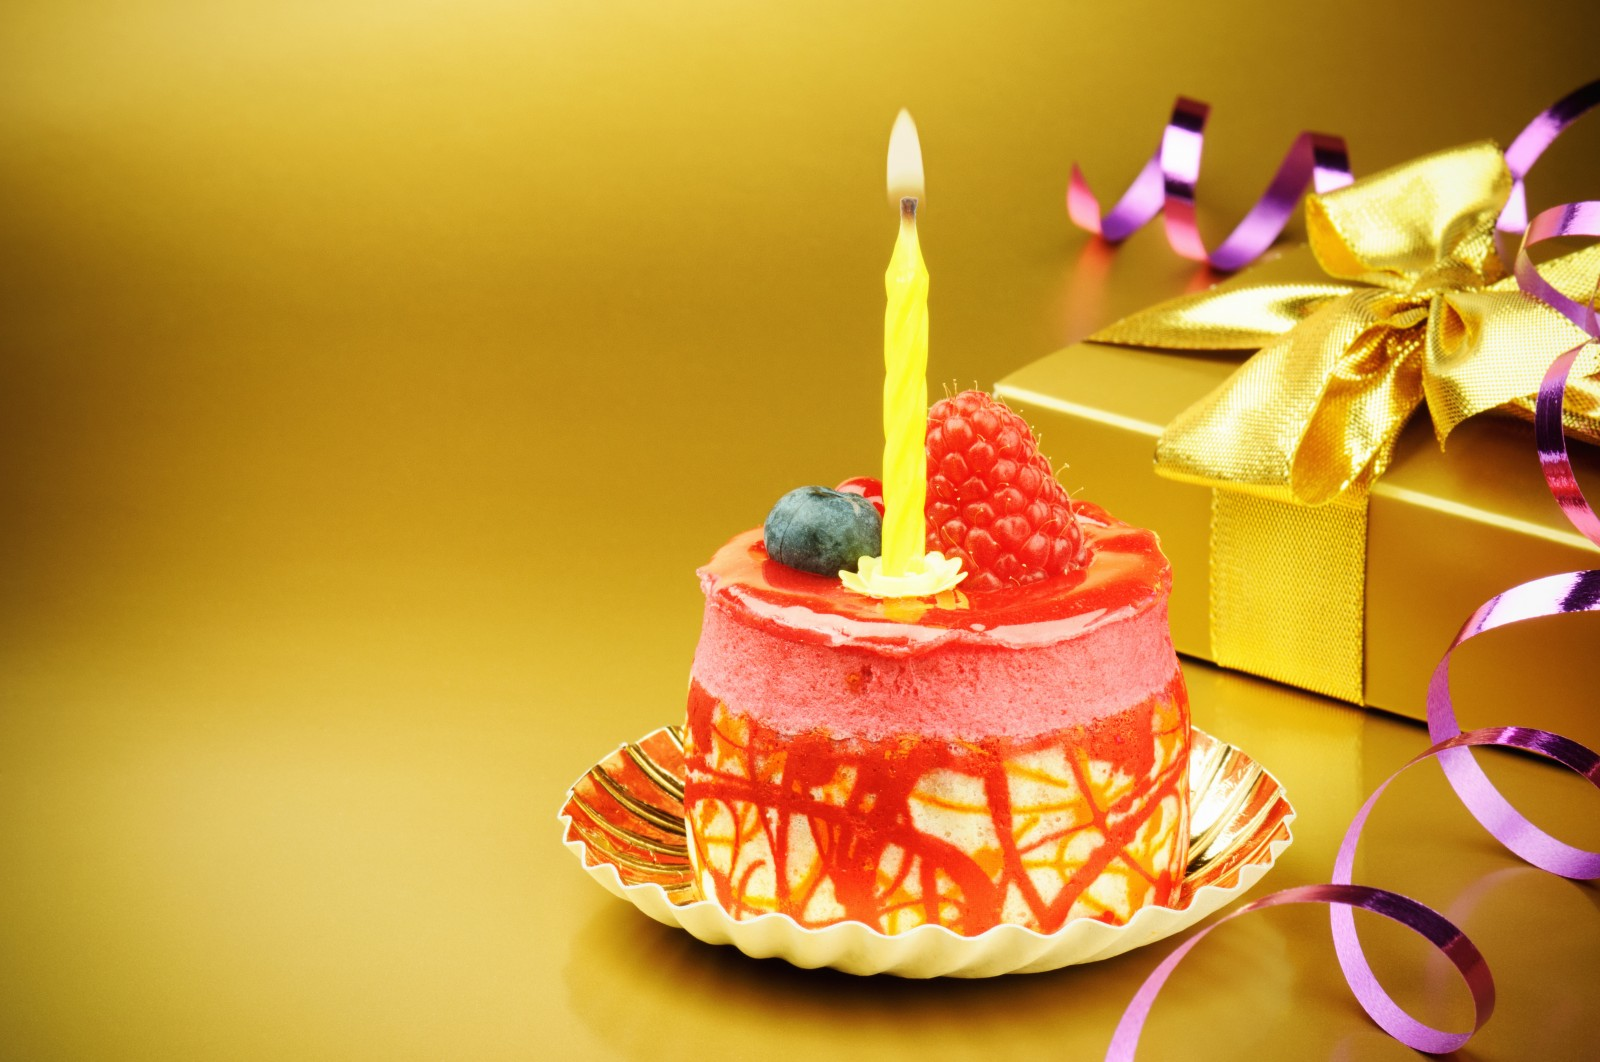 Image Of Birthday Cake With One Candle : 5 Beautiful Birthday cake design ideas